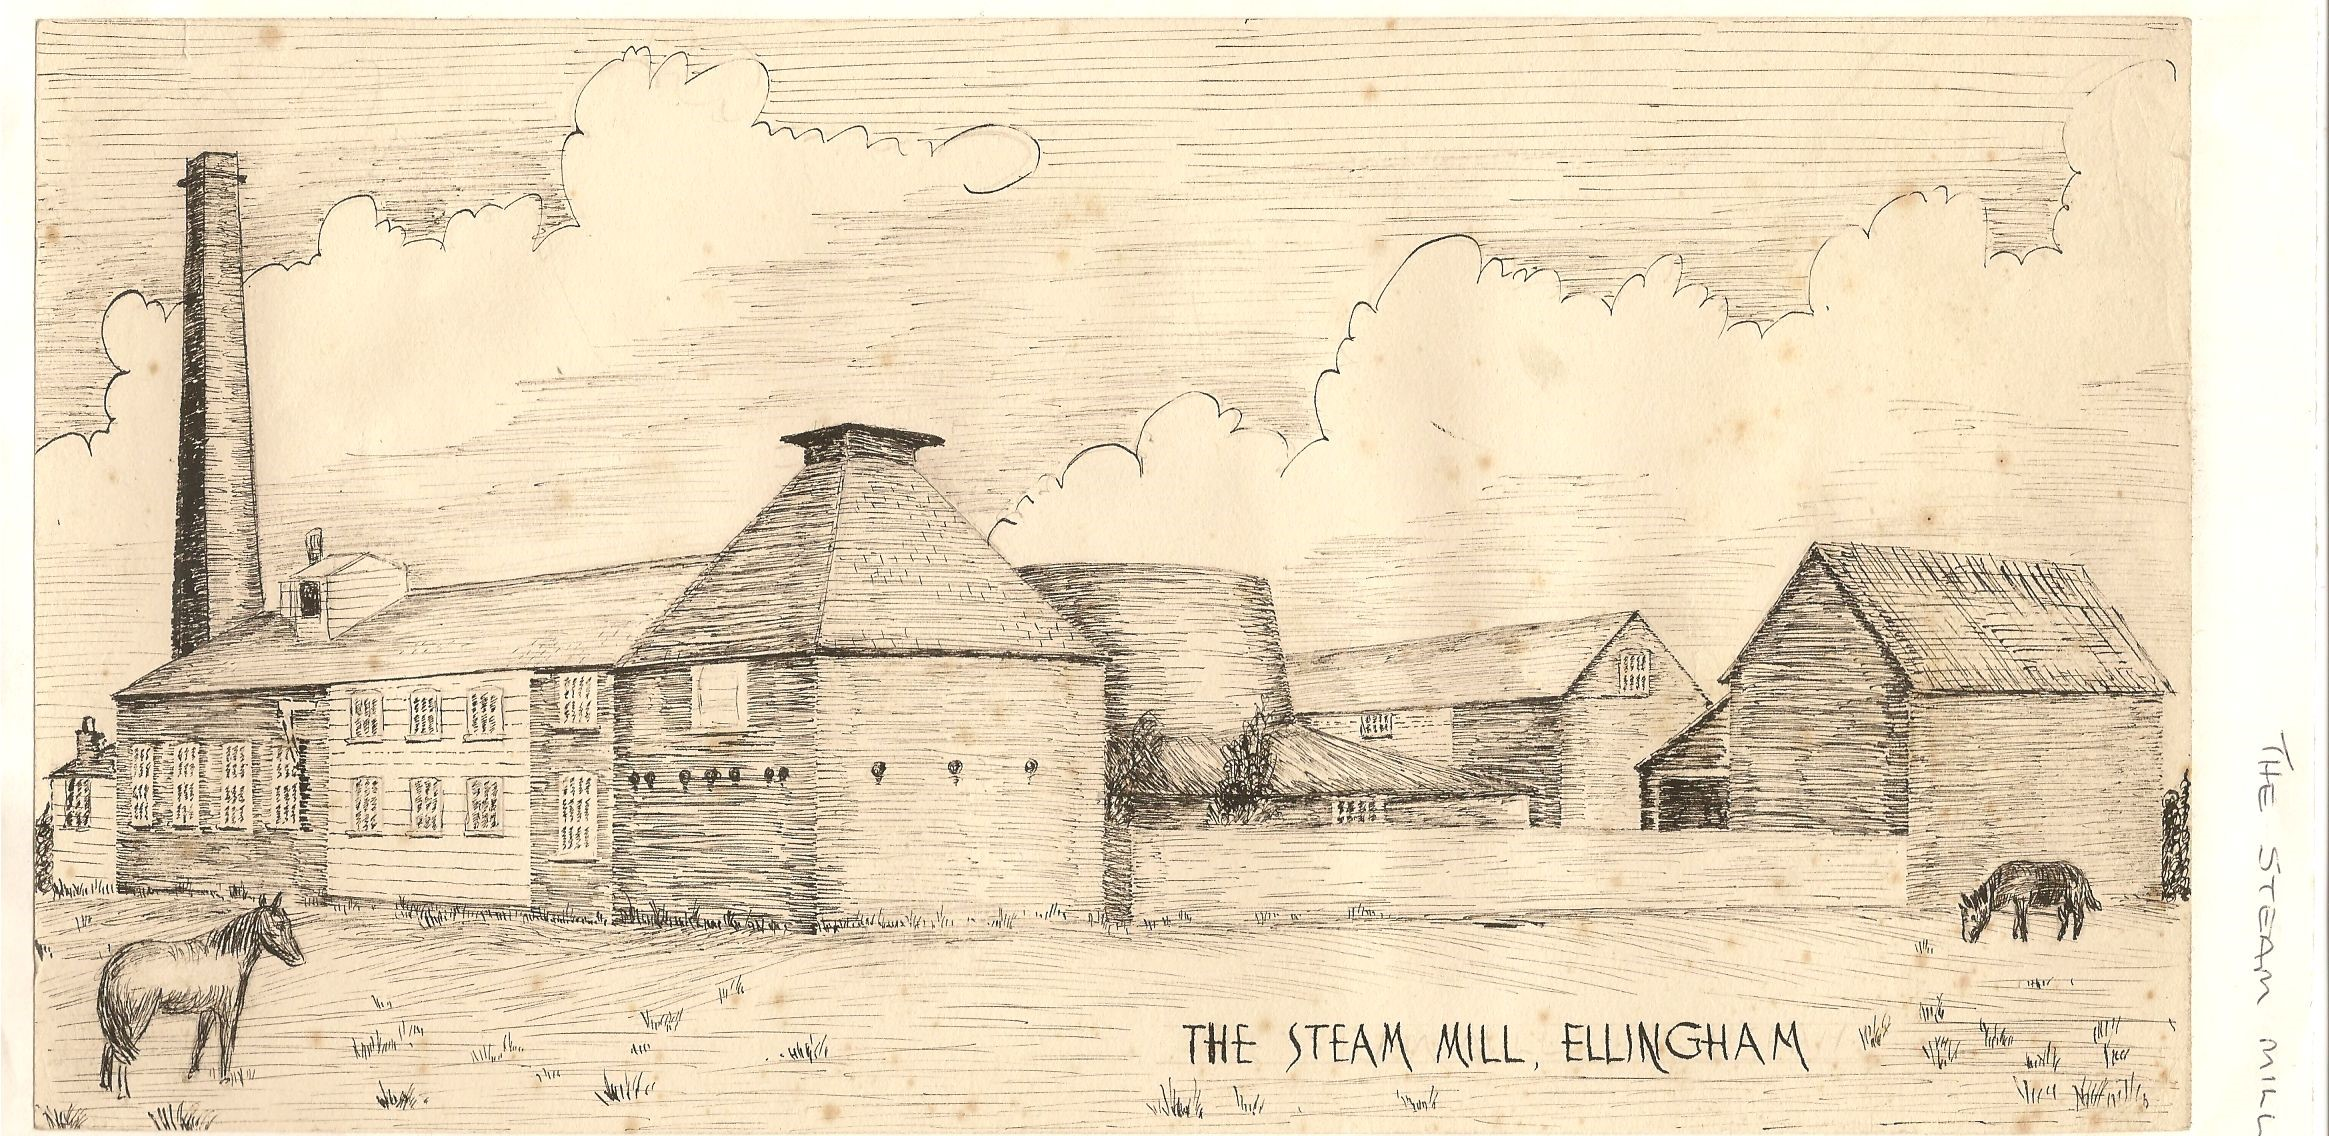 Ellingham Steam Mill